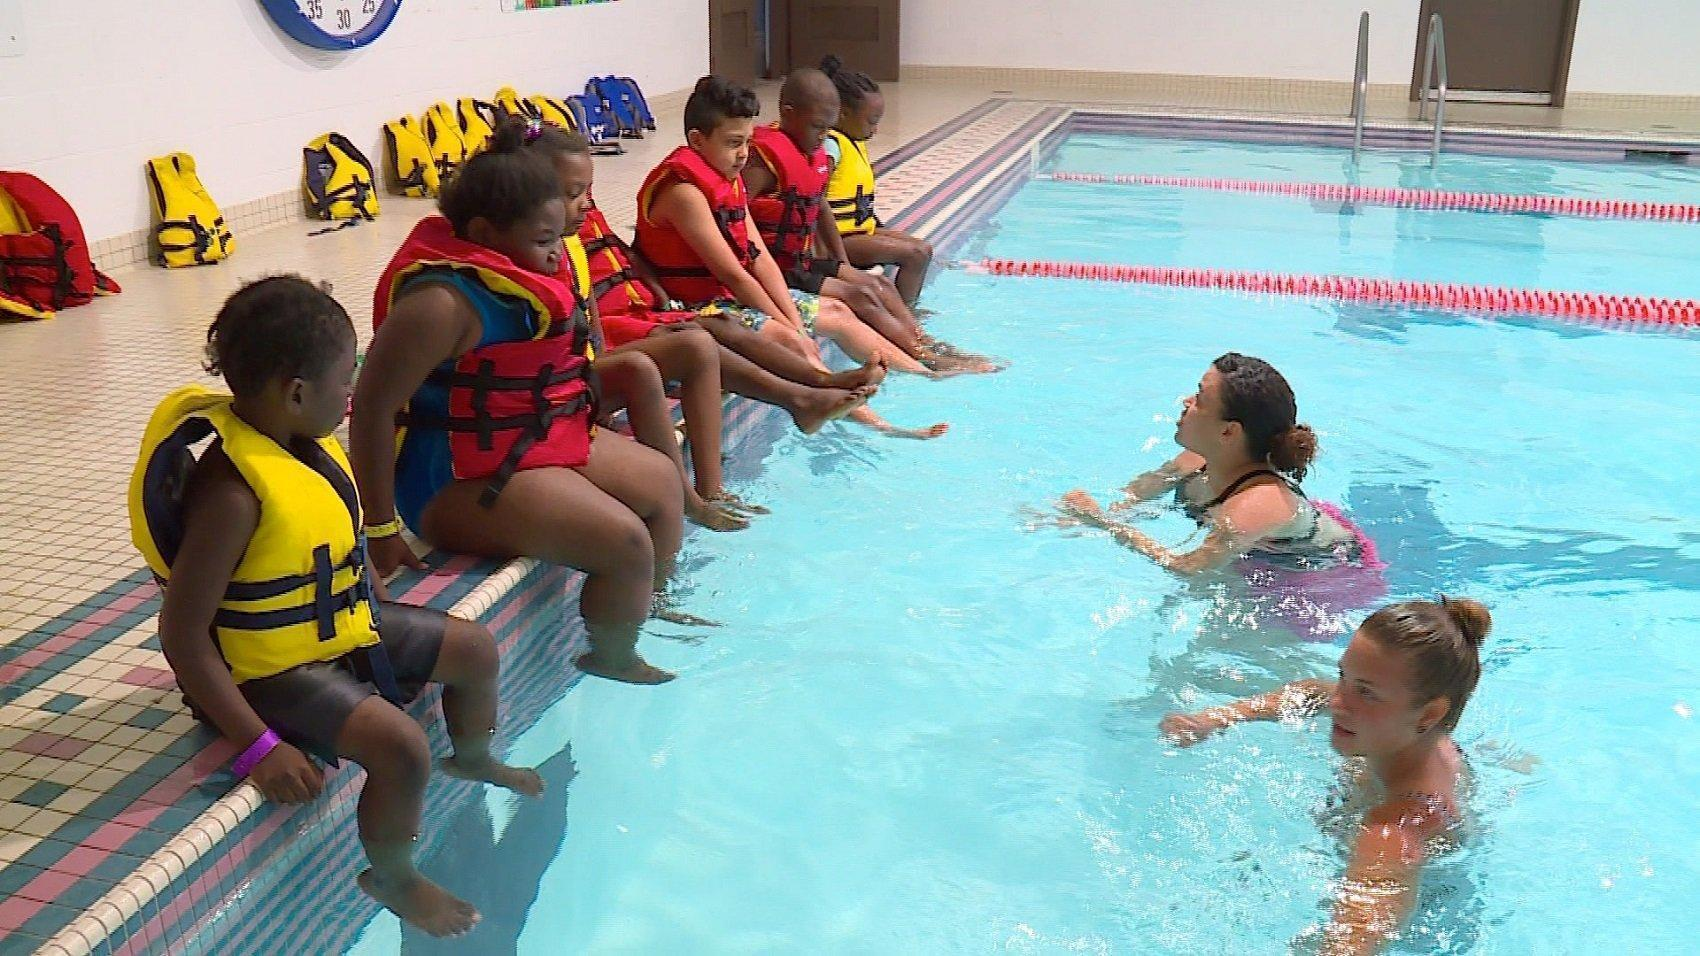 Drowning statistics prompt free ymca program for hartford kids hartford courant for Ymca manila swimming pool rates